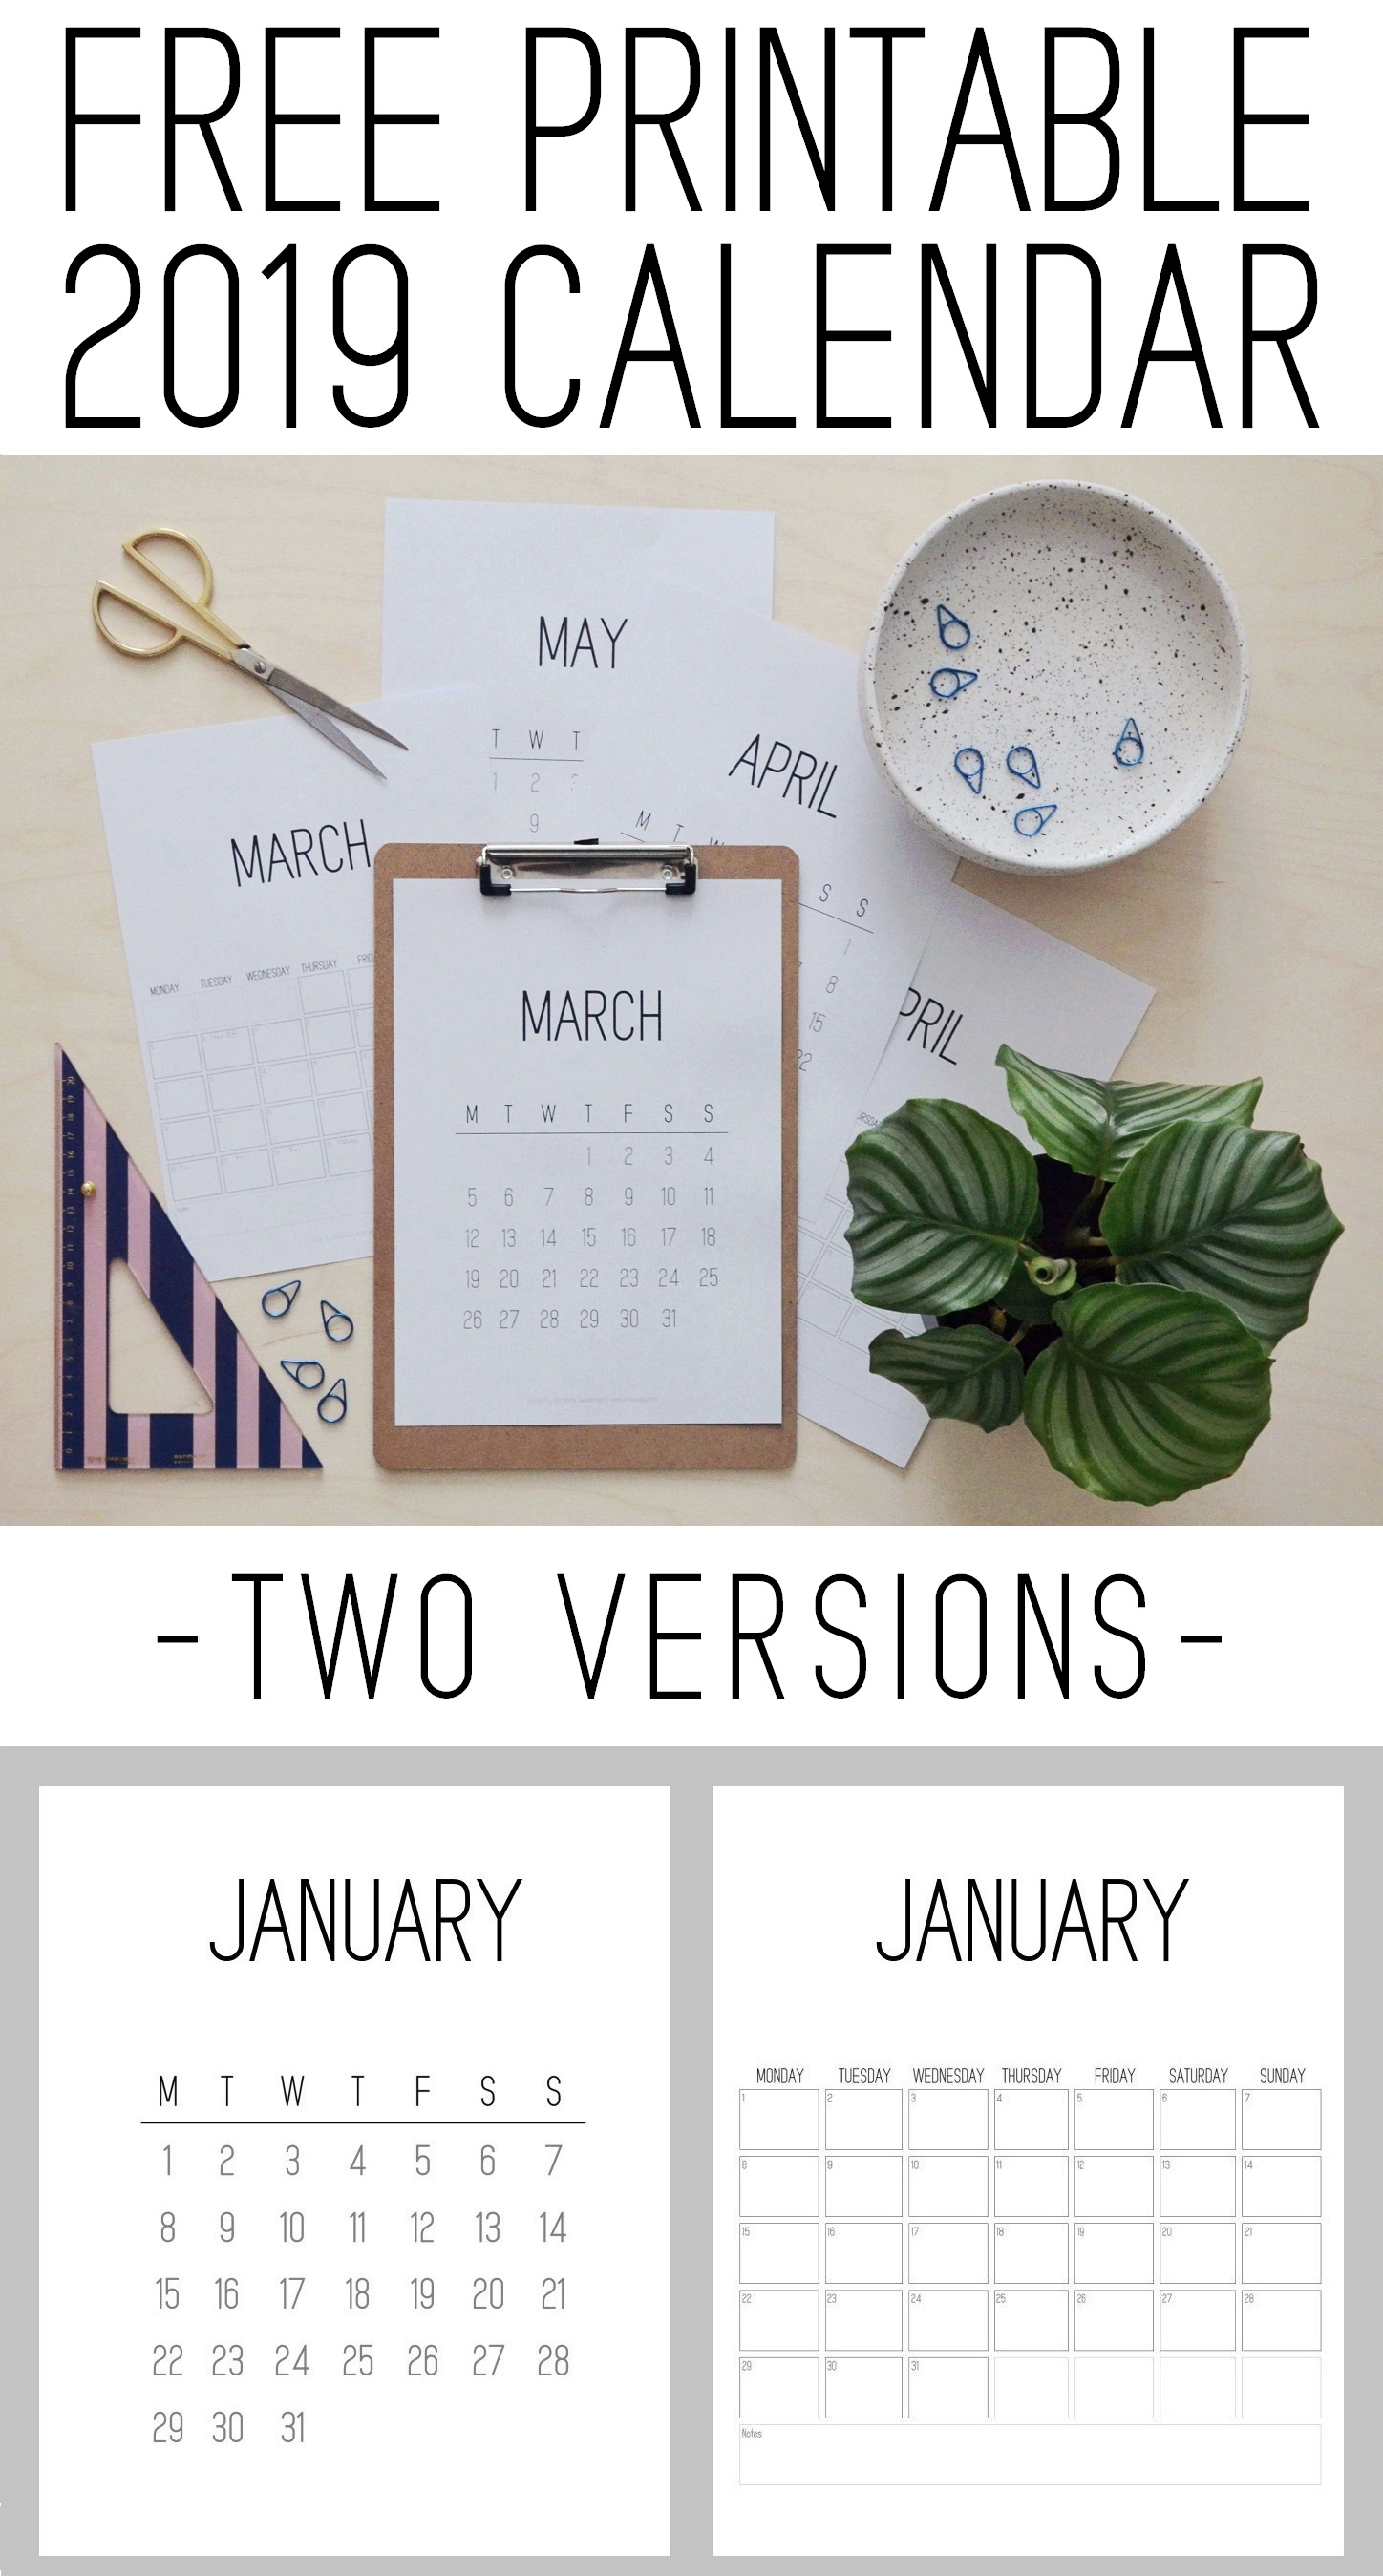 Free printable calendar for 2019 | Kreavilla